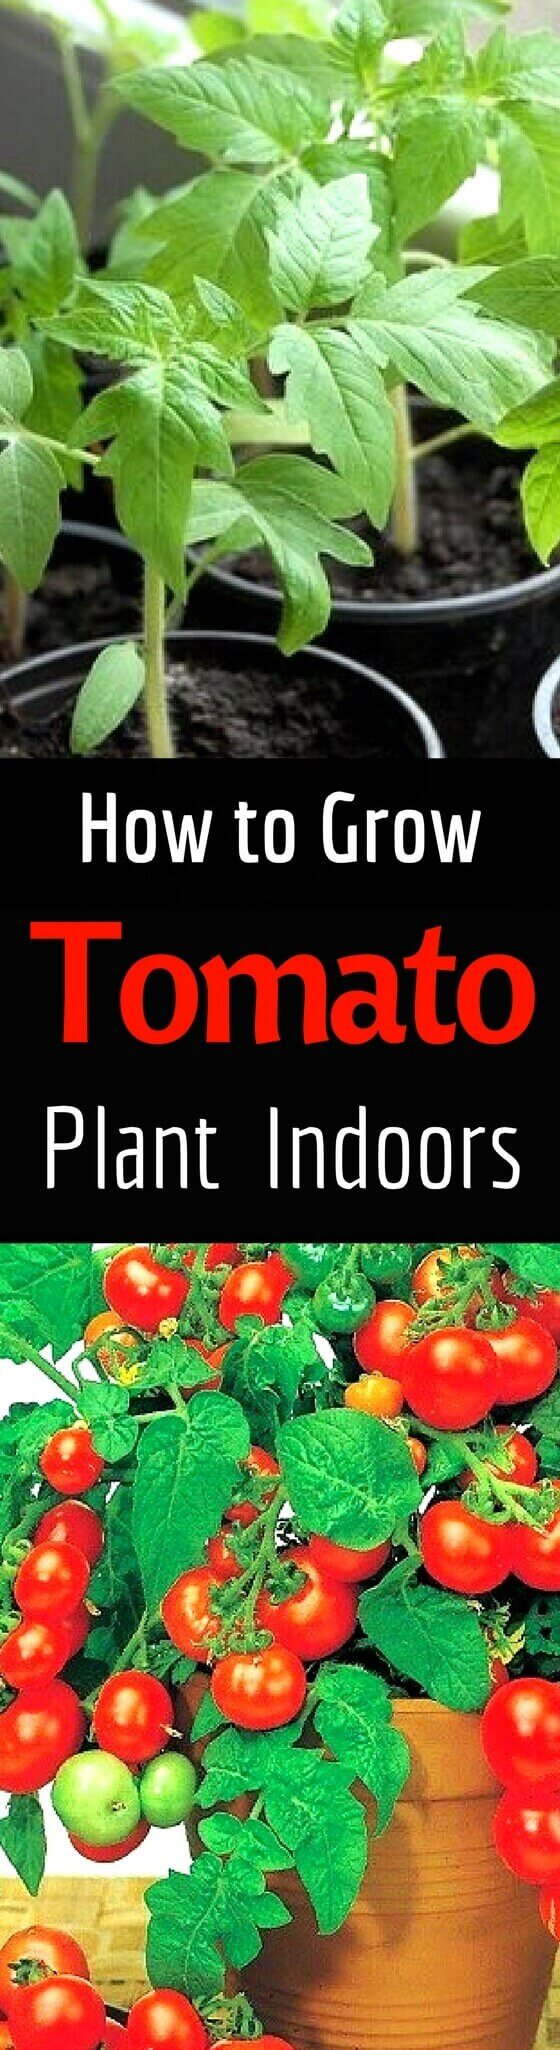 How to Grow Tomato Indoors